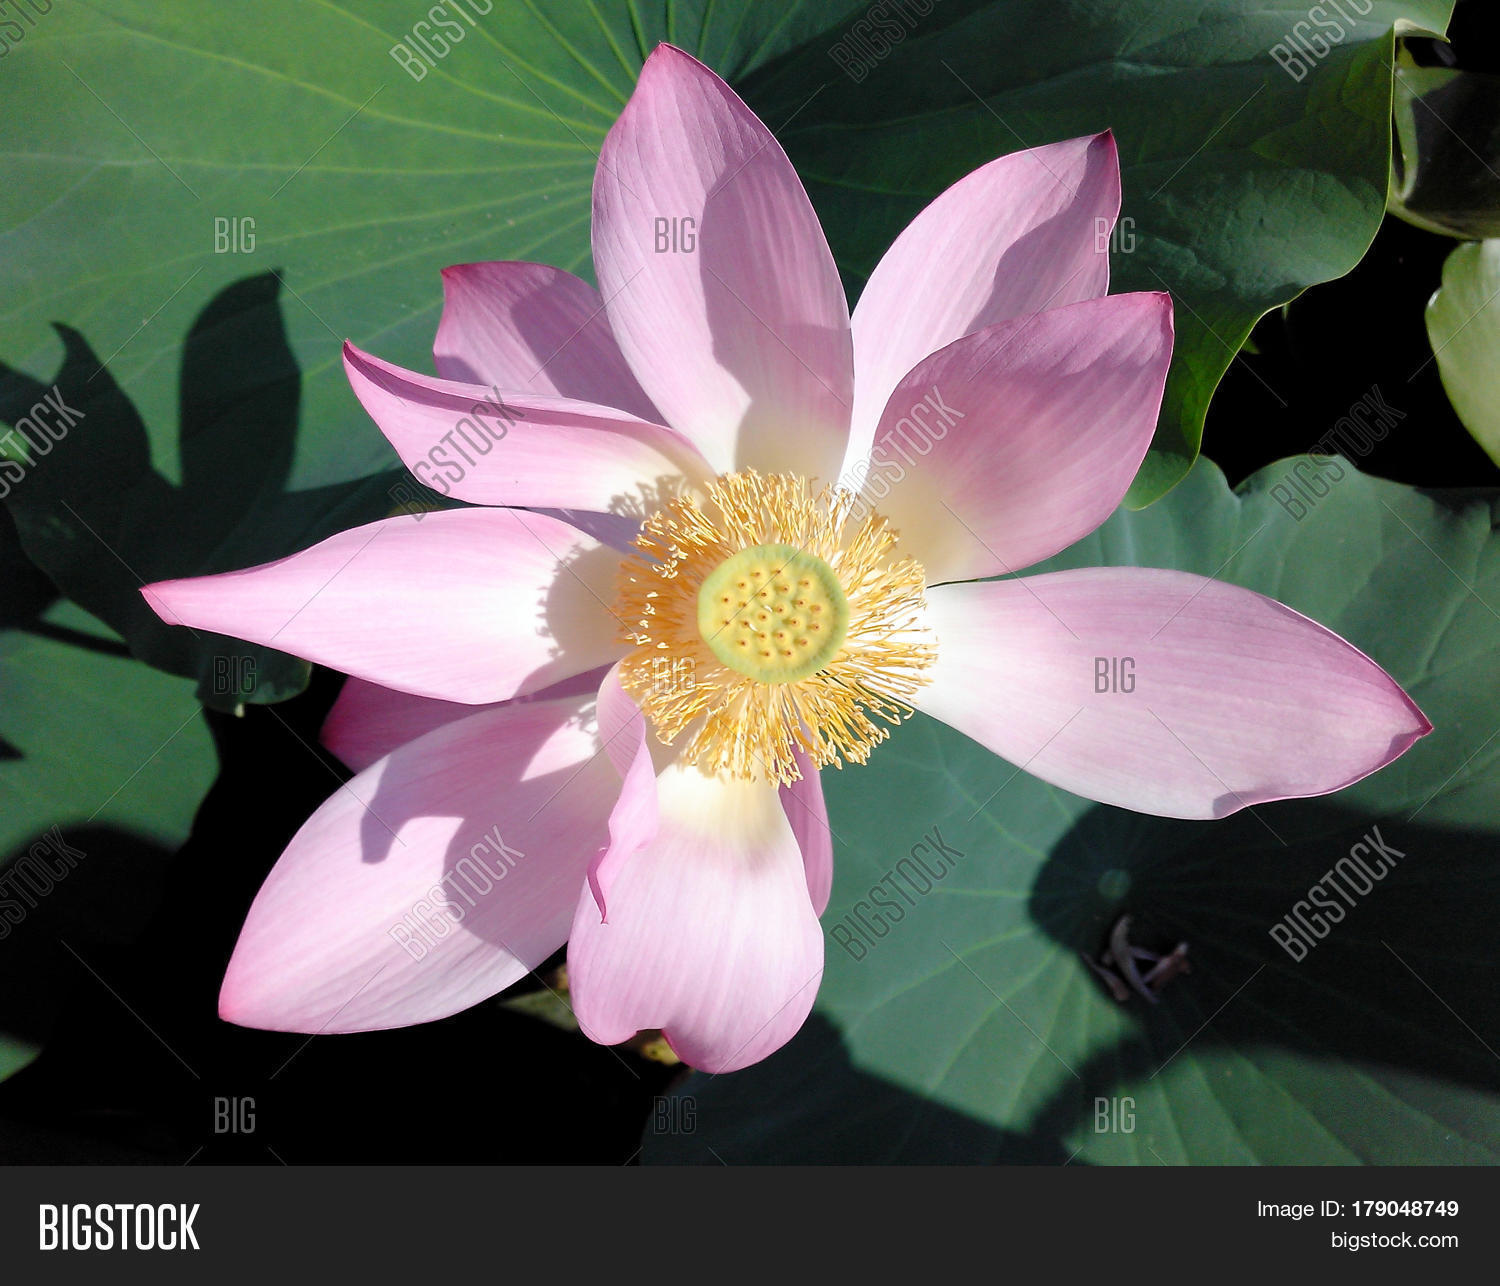 Lotus Blossom Flower Image Photo Free Trial Bigstock